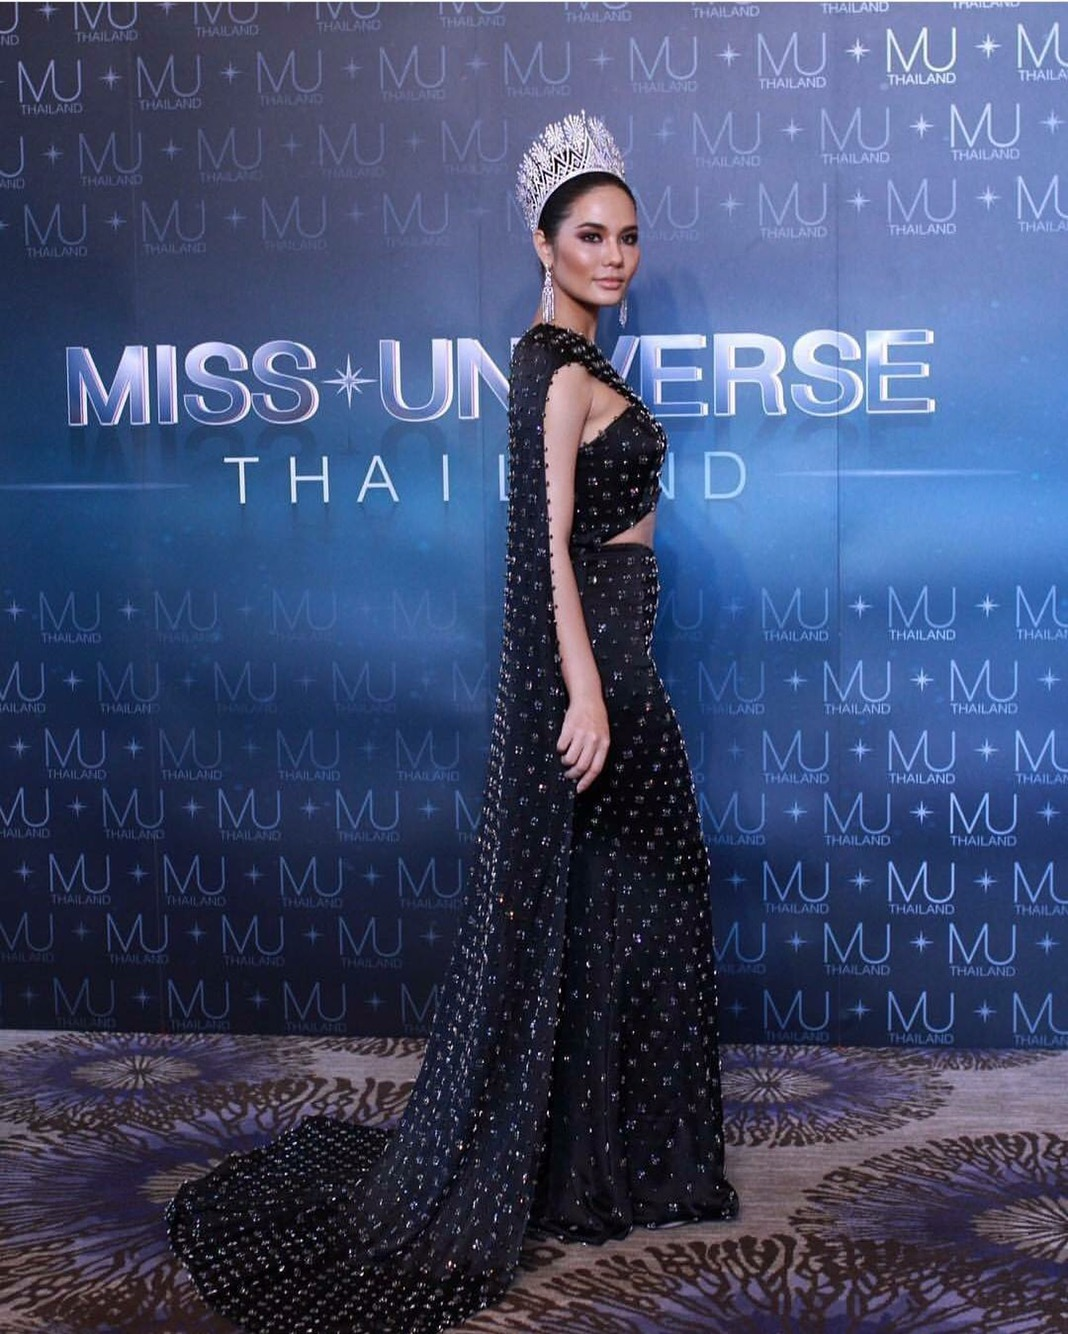 Mrs universe 2018 dresses in style